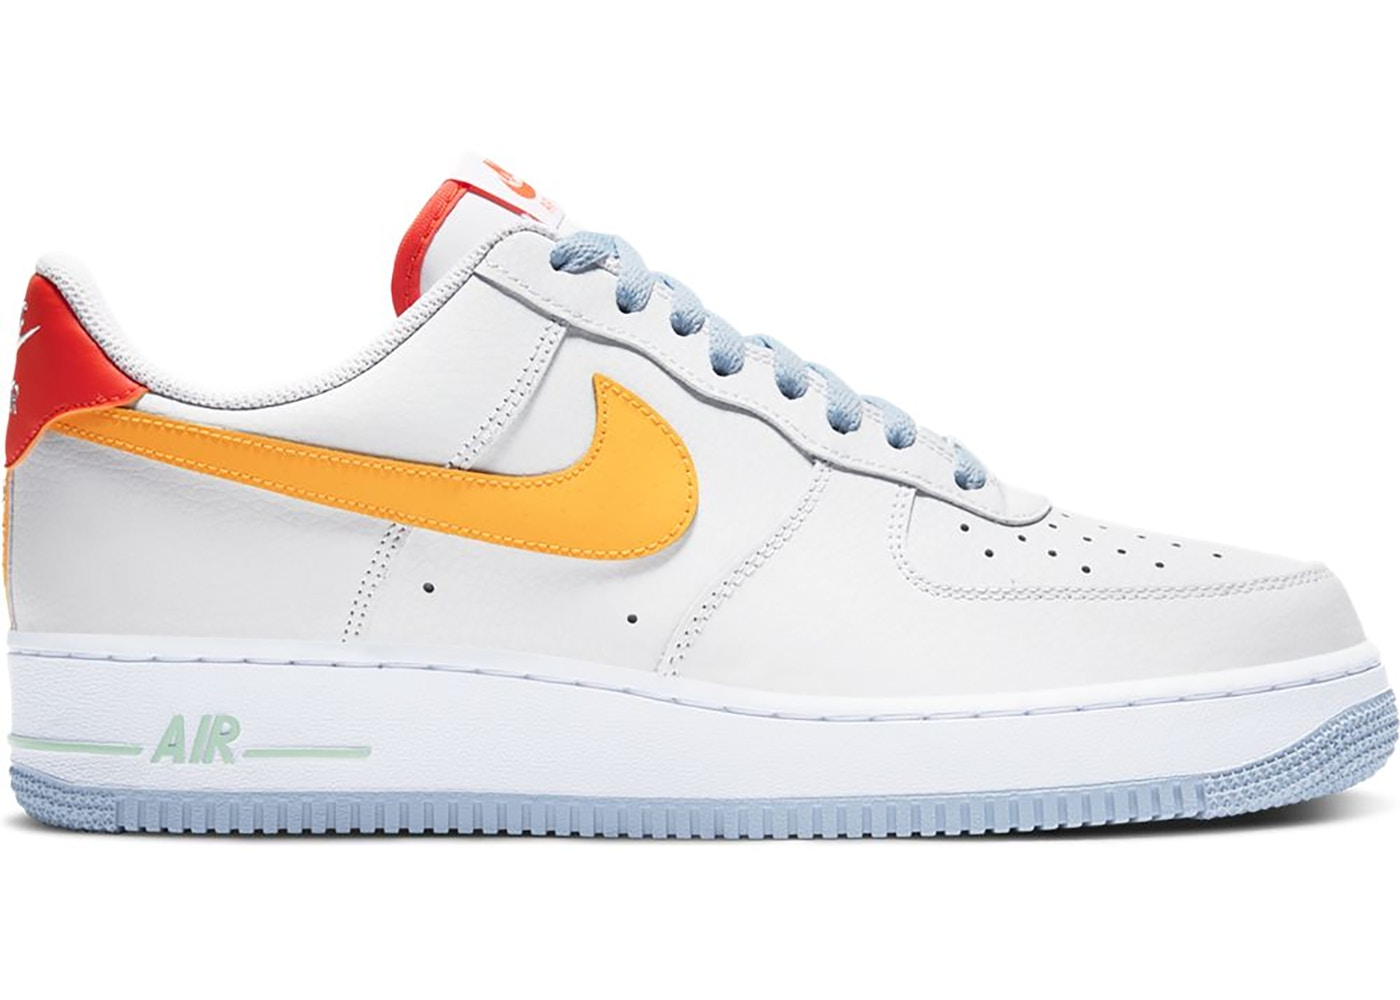 Nike Air Force 1 Low Kindness Day 2020 Dc2196 100 Biete den nike air force 1 shadow pastell in der größe 38.5eu an. nike air force 1 low kindness day 2020